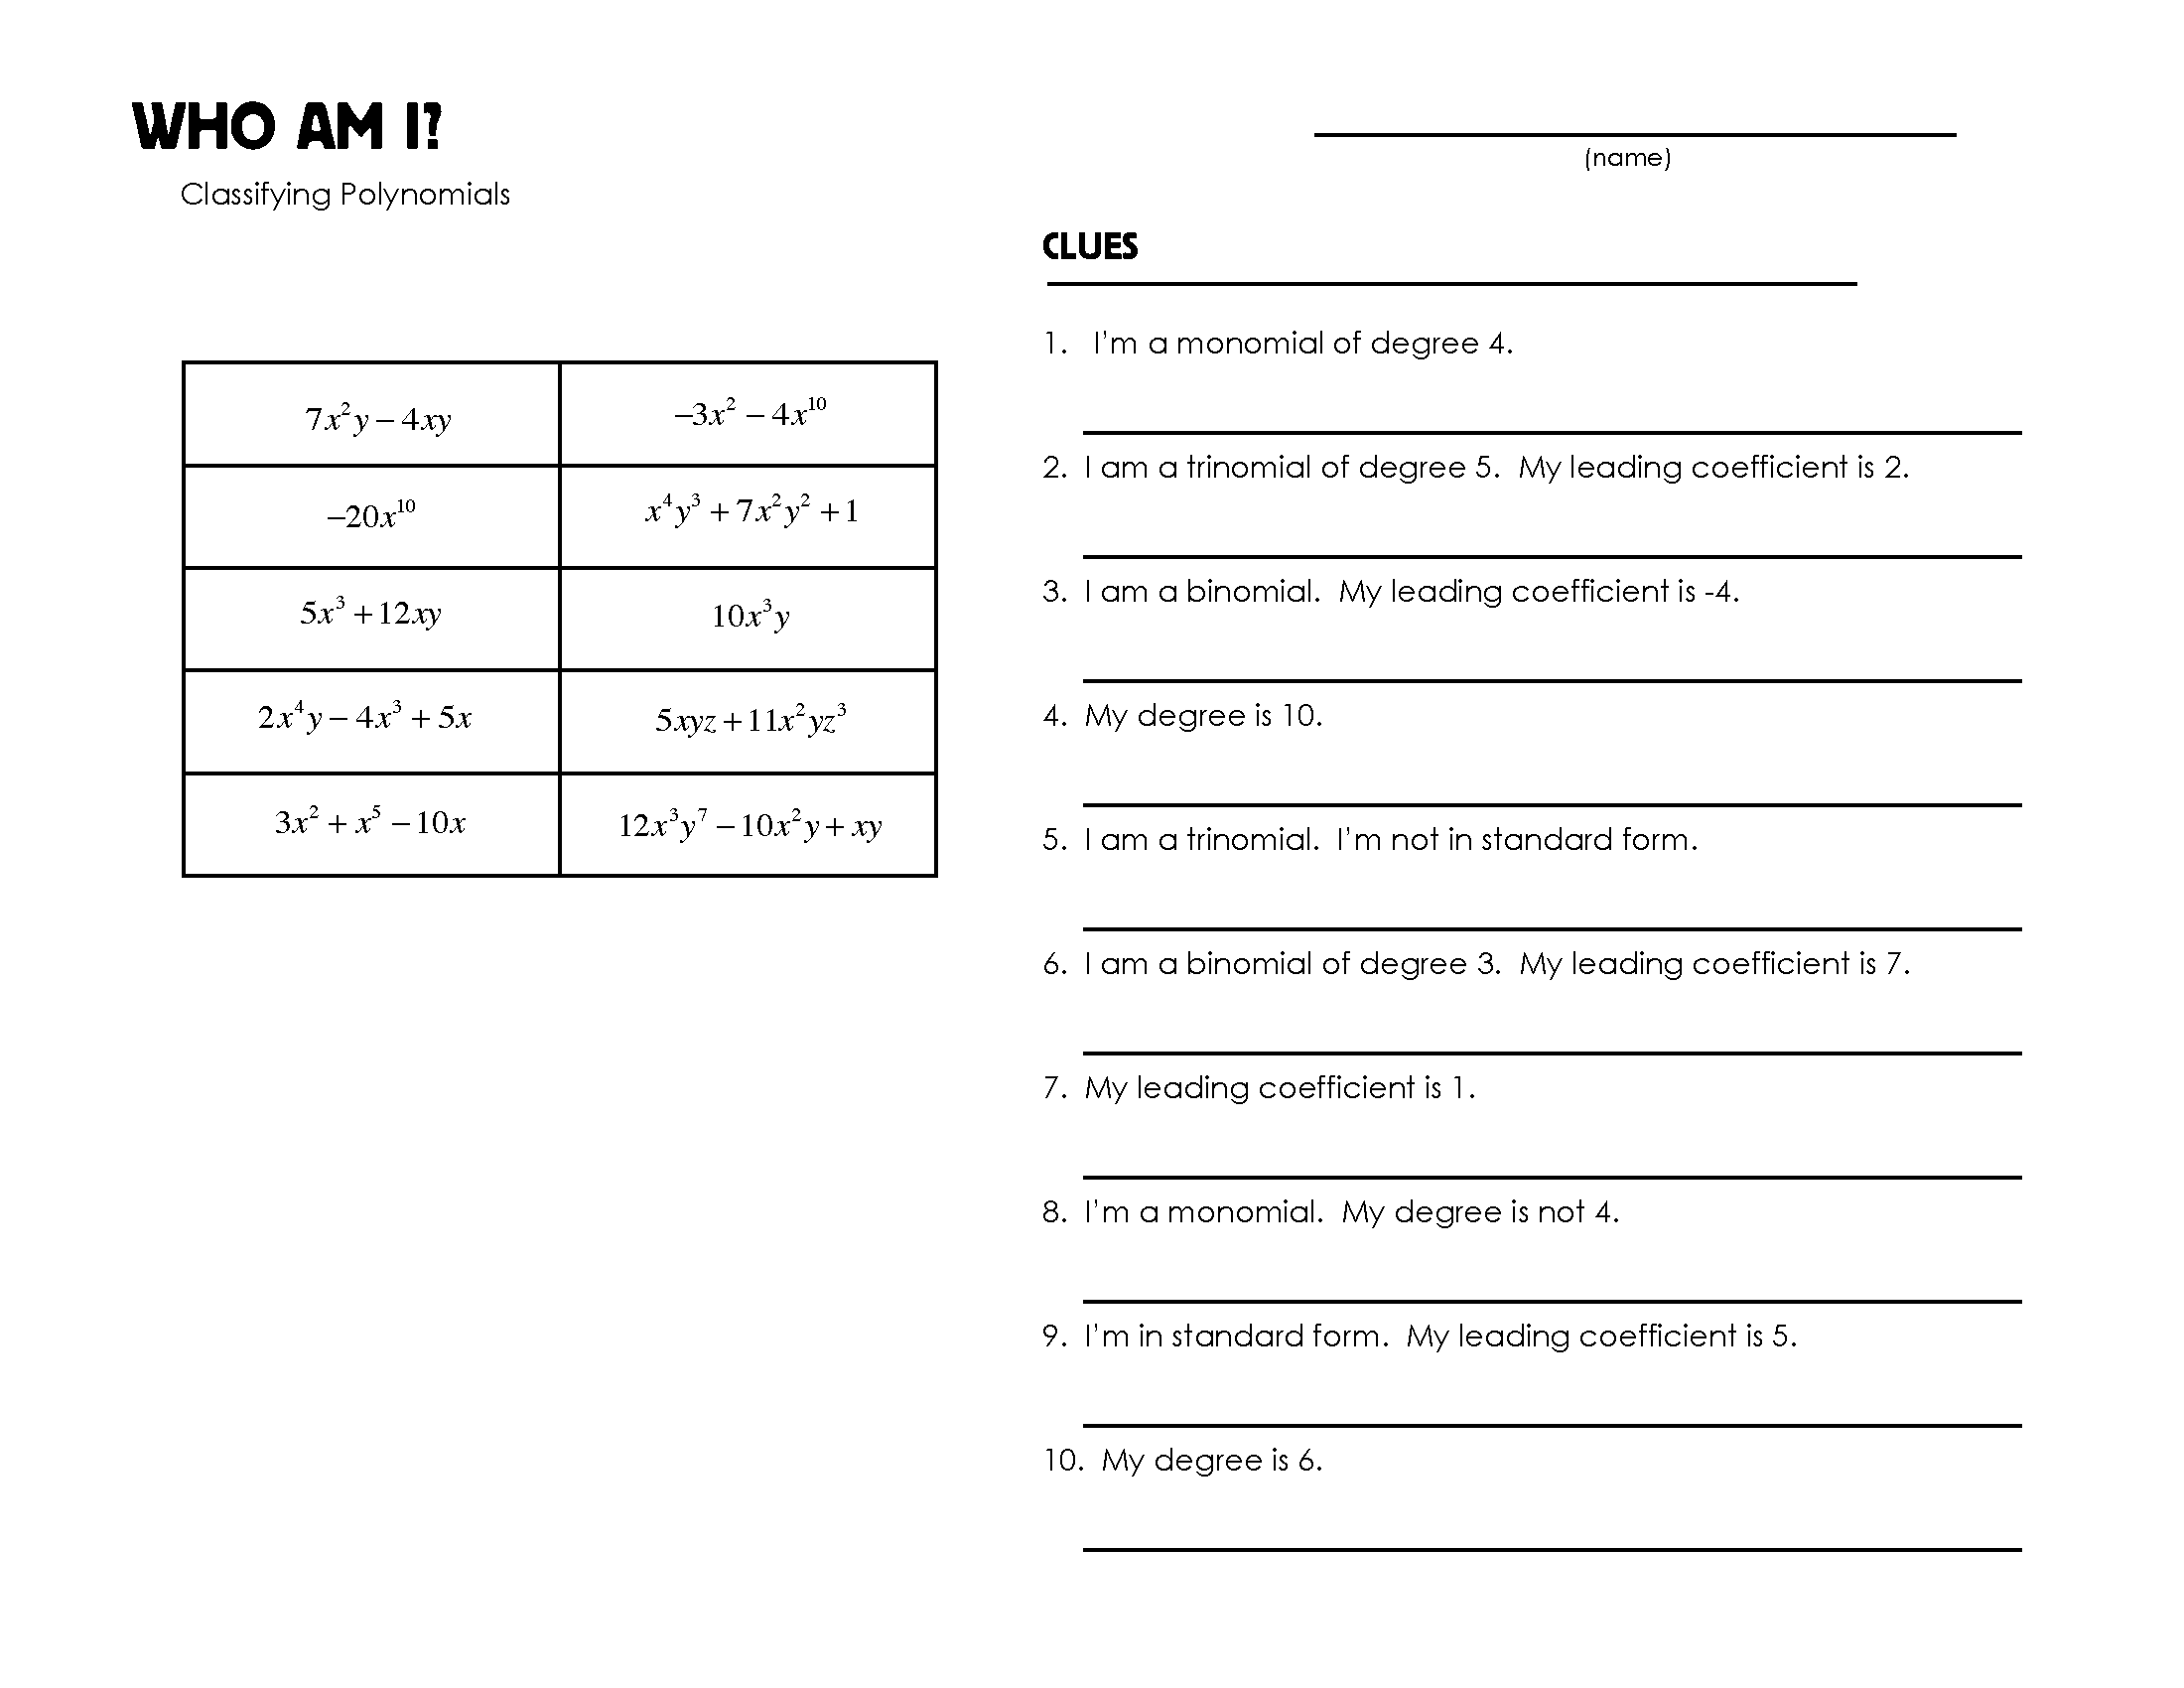 graphic organizer | mrmillermath